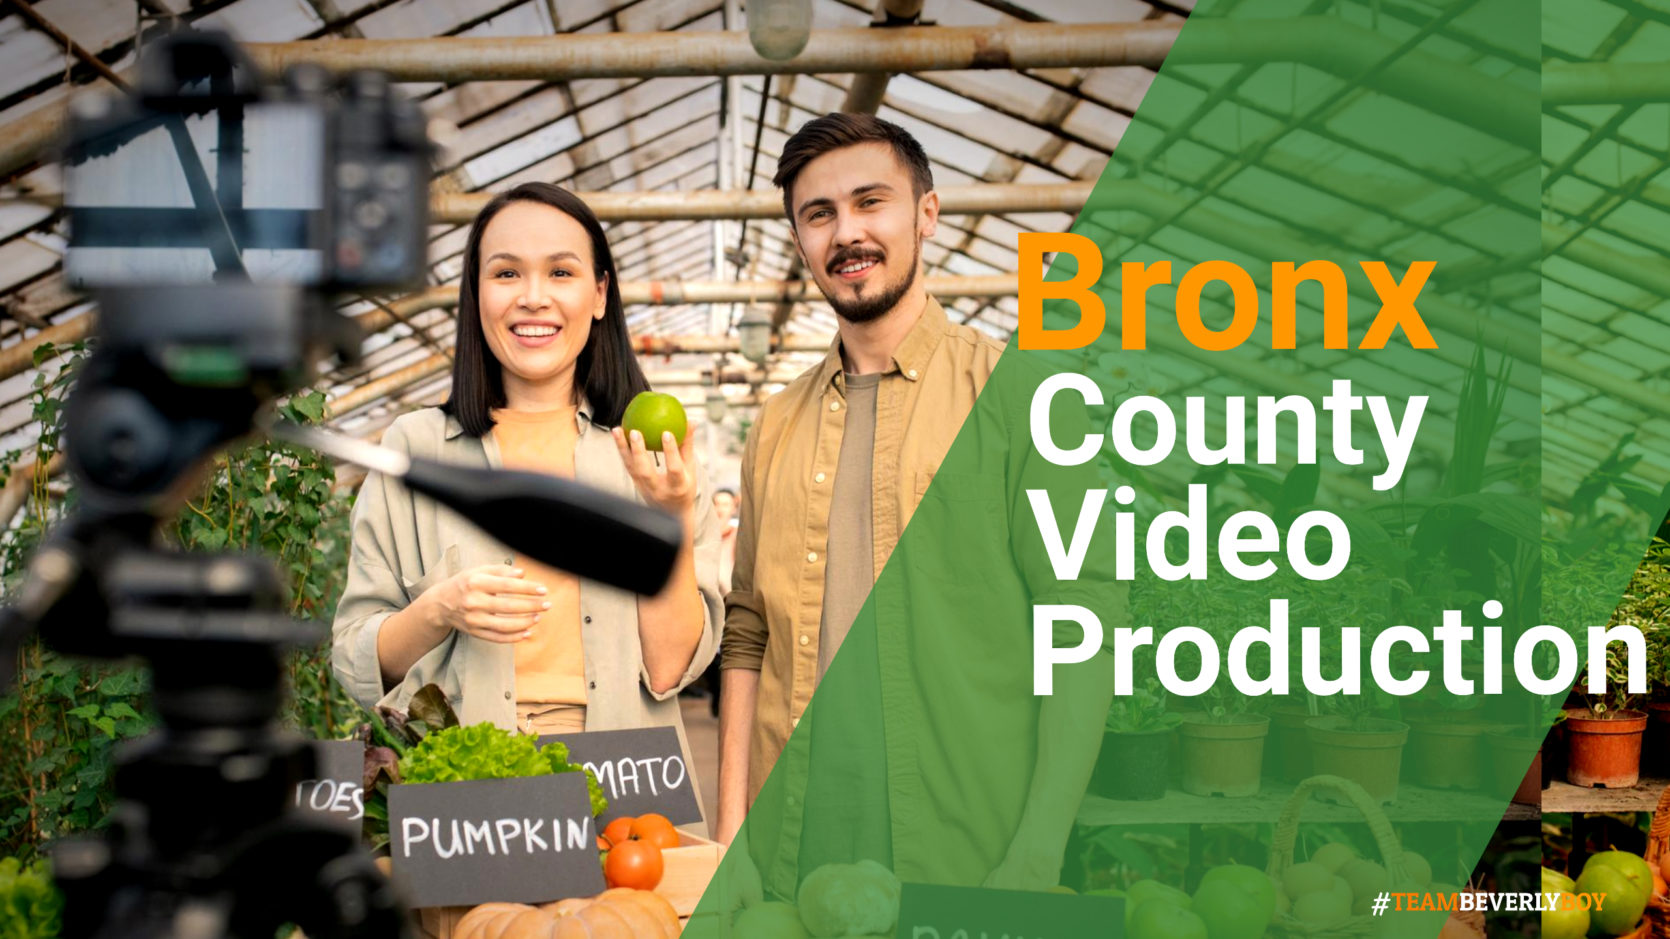 Bronx county video production